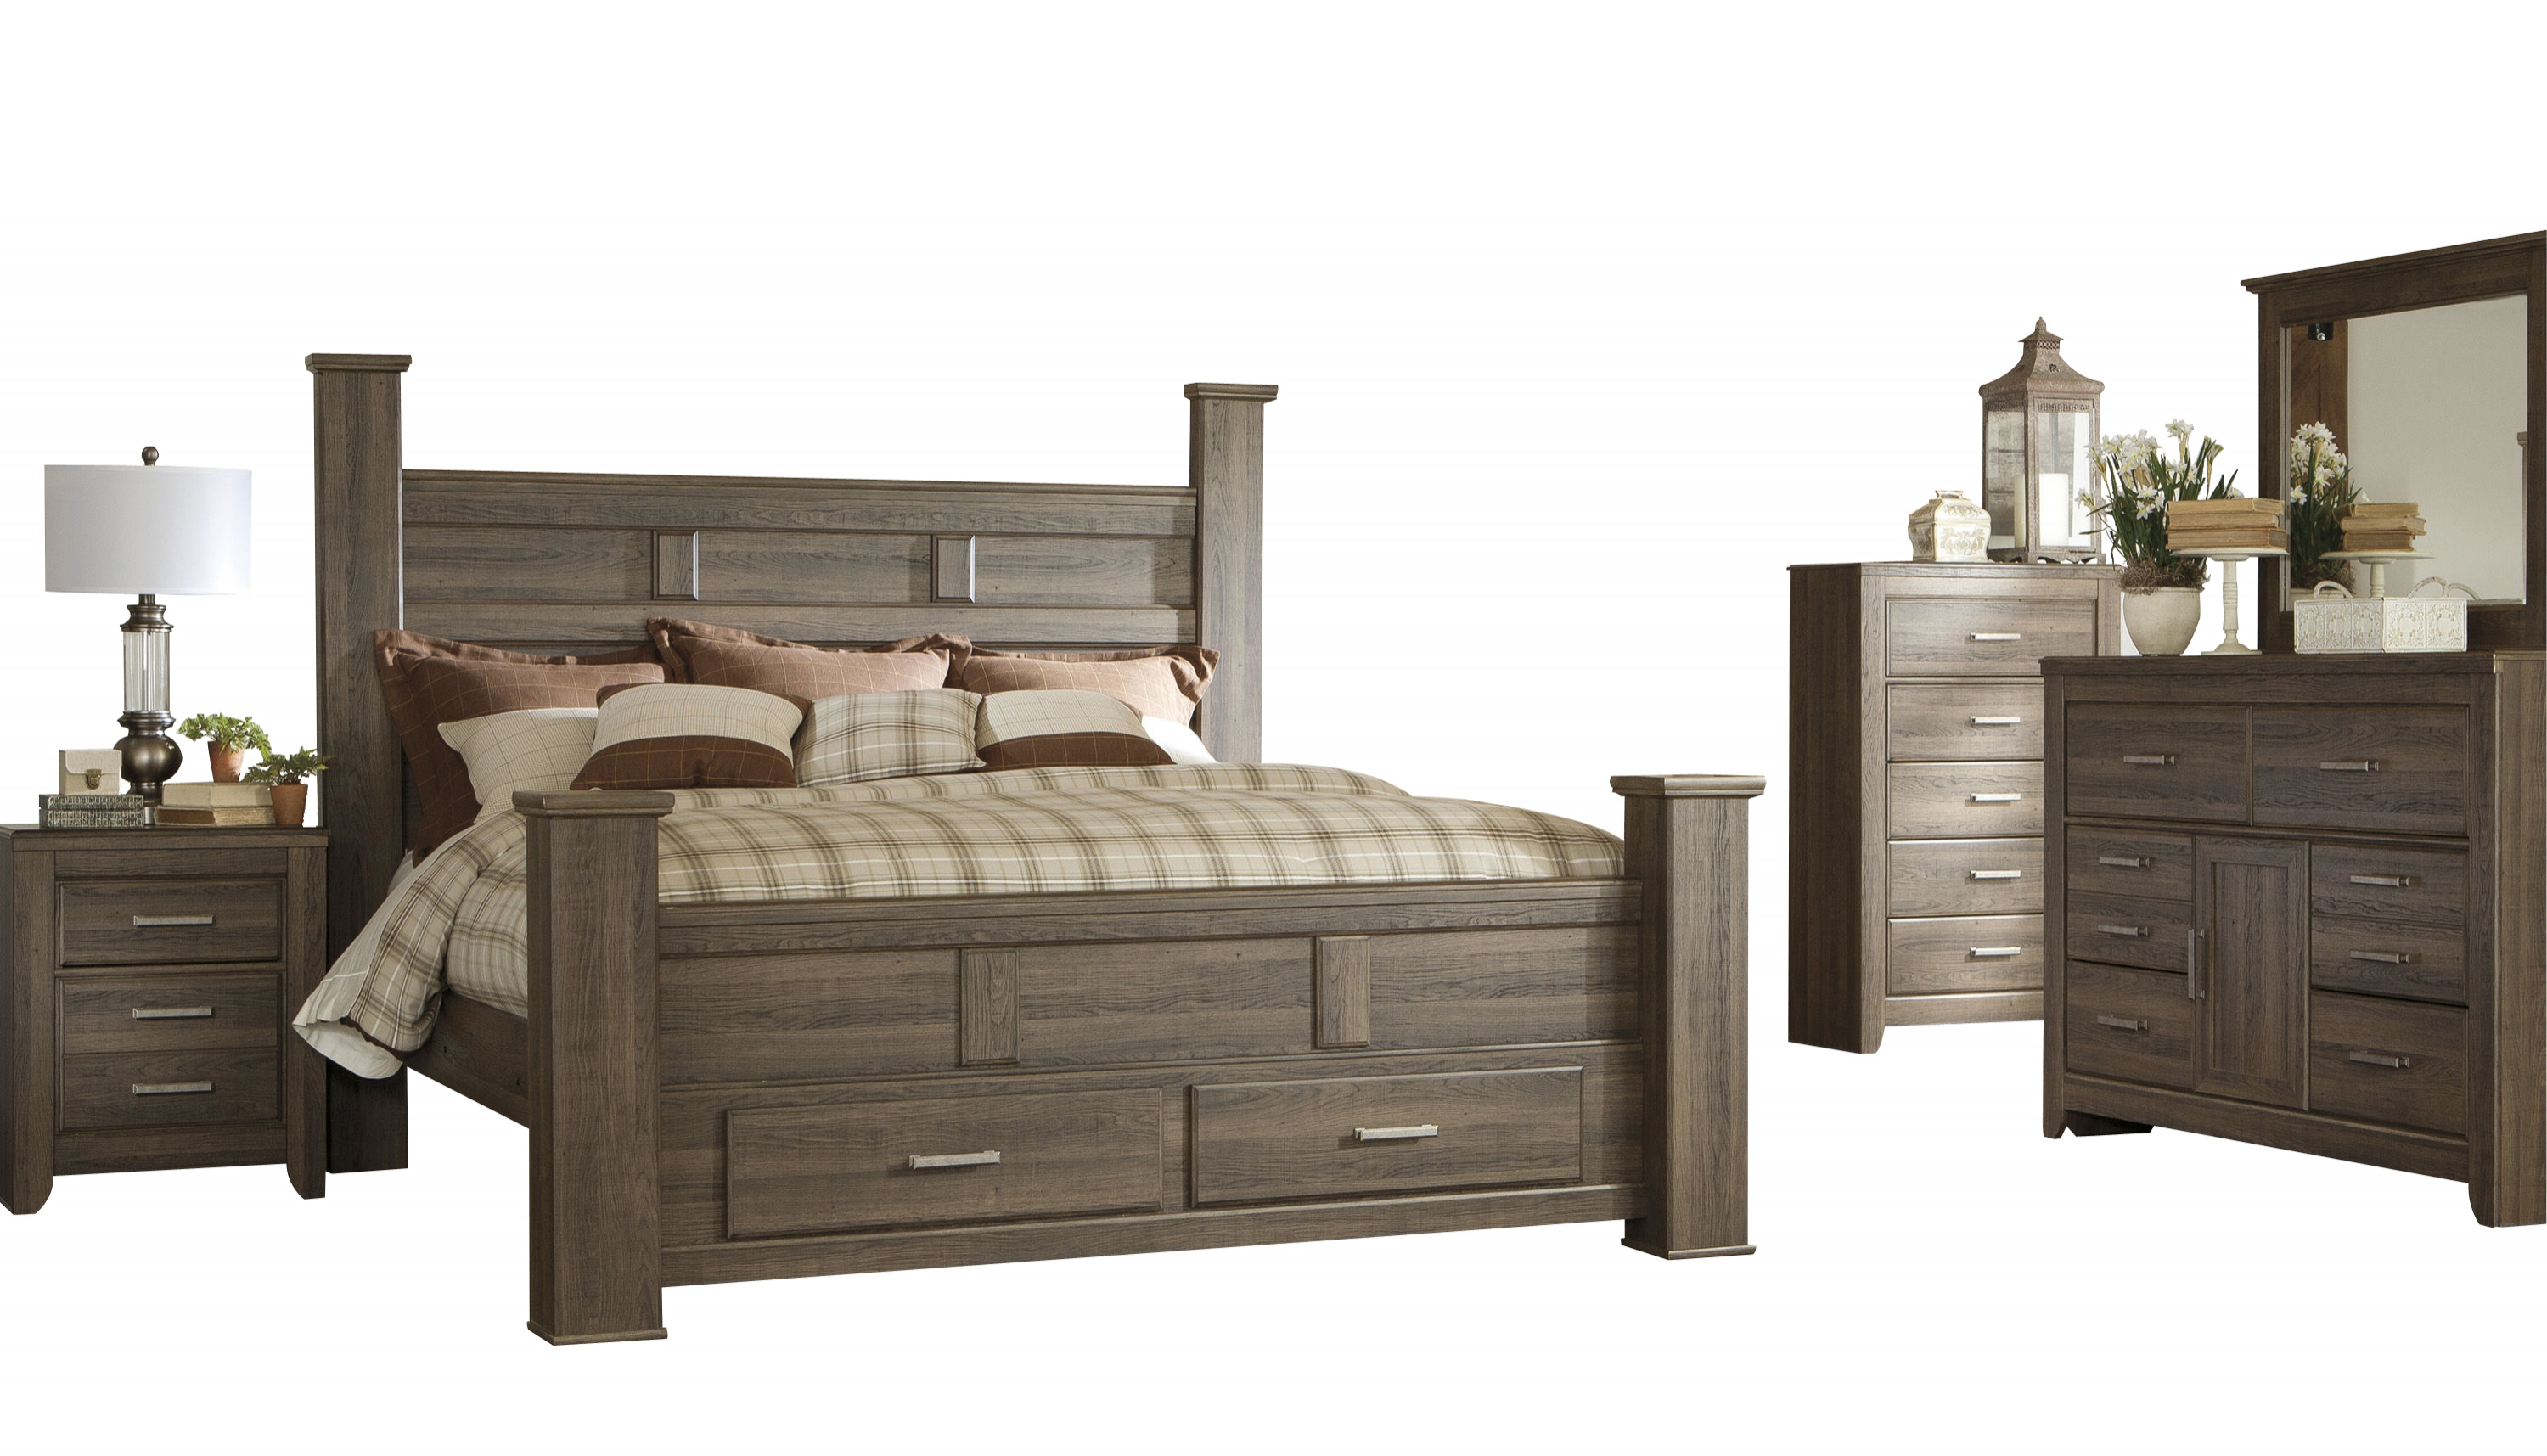 Ashley Furniture Juararo 2pc Bedroom Set With King Poster Storage Bed The Classy Home